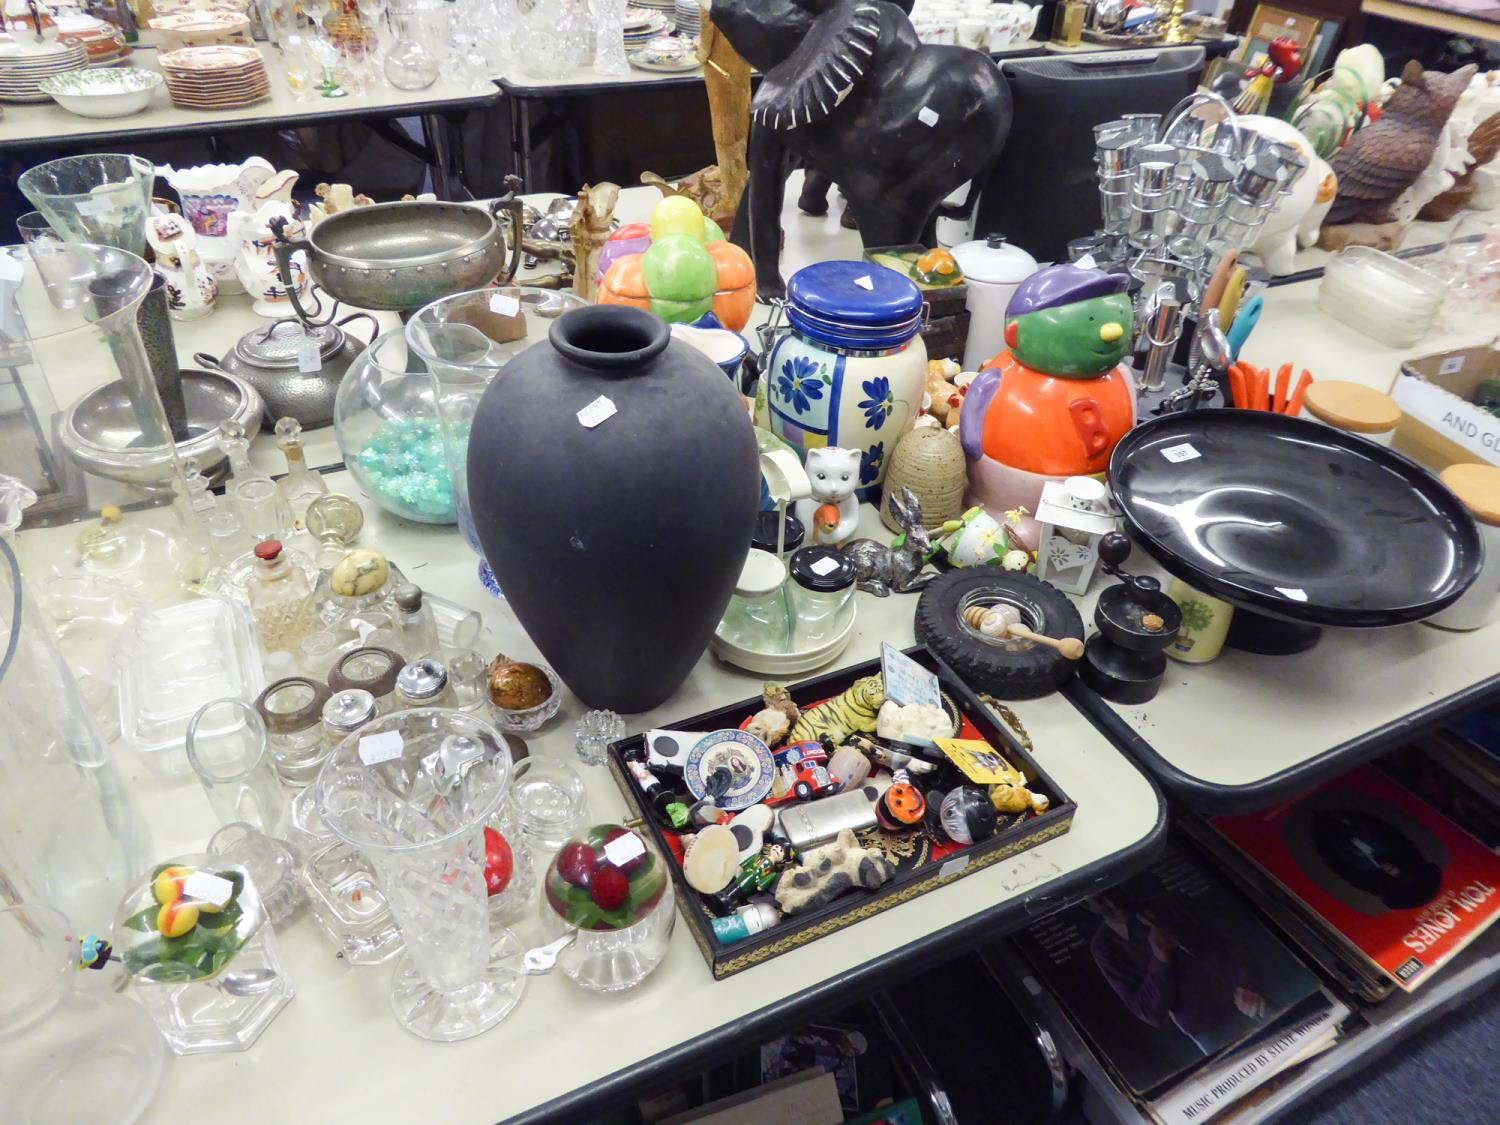 Lot 357 - A QUANTITY OF KITCHEN WARES TO INCLUDE; DOMESTIC POTTERY AND GLASSWARES, SPICE RACK, STORAGE JARS,